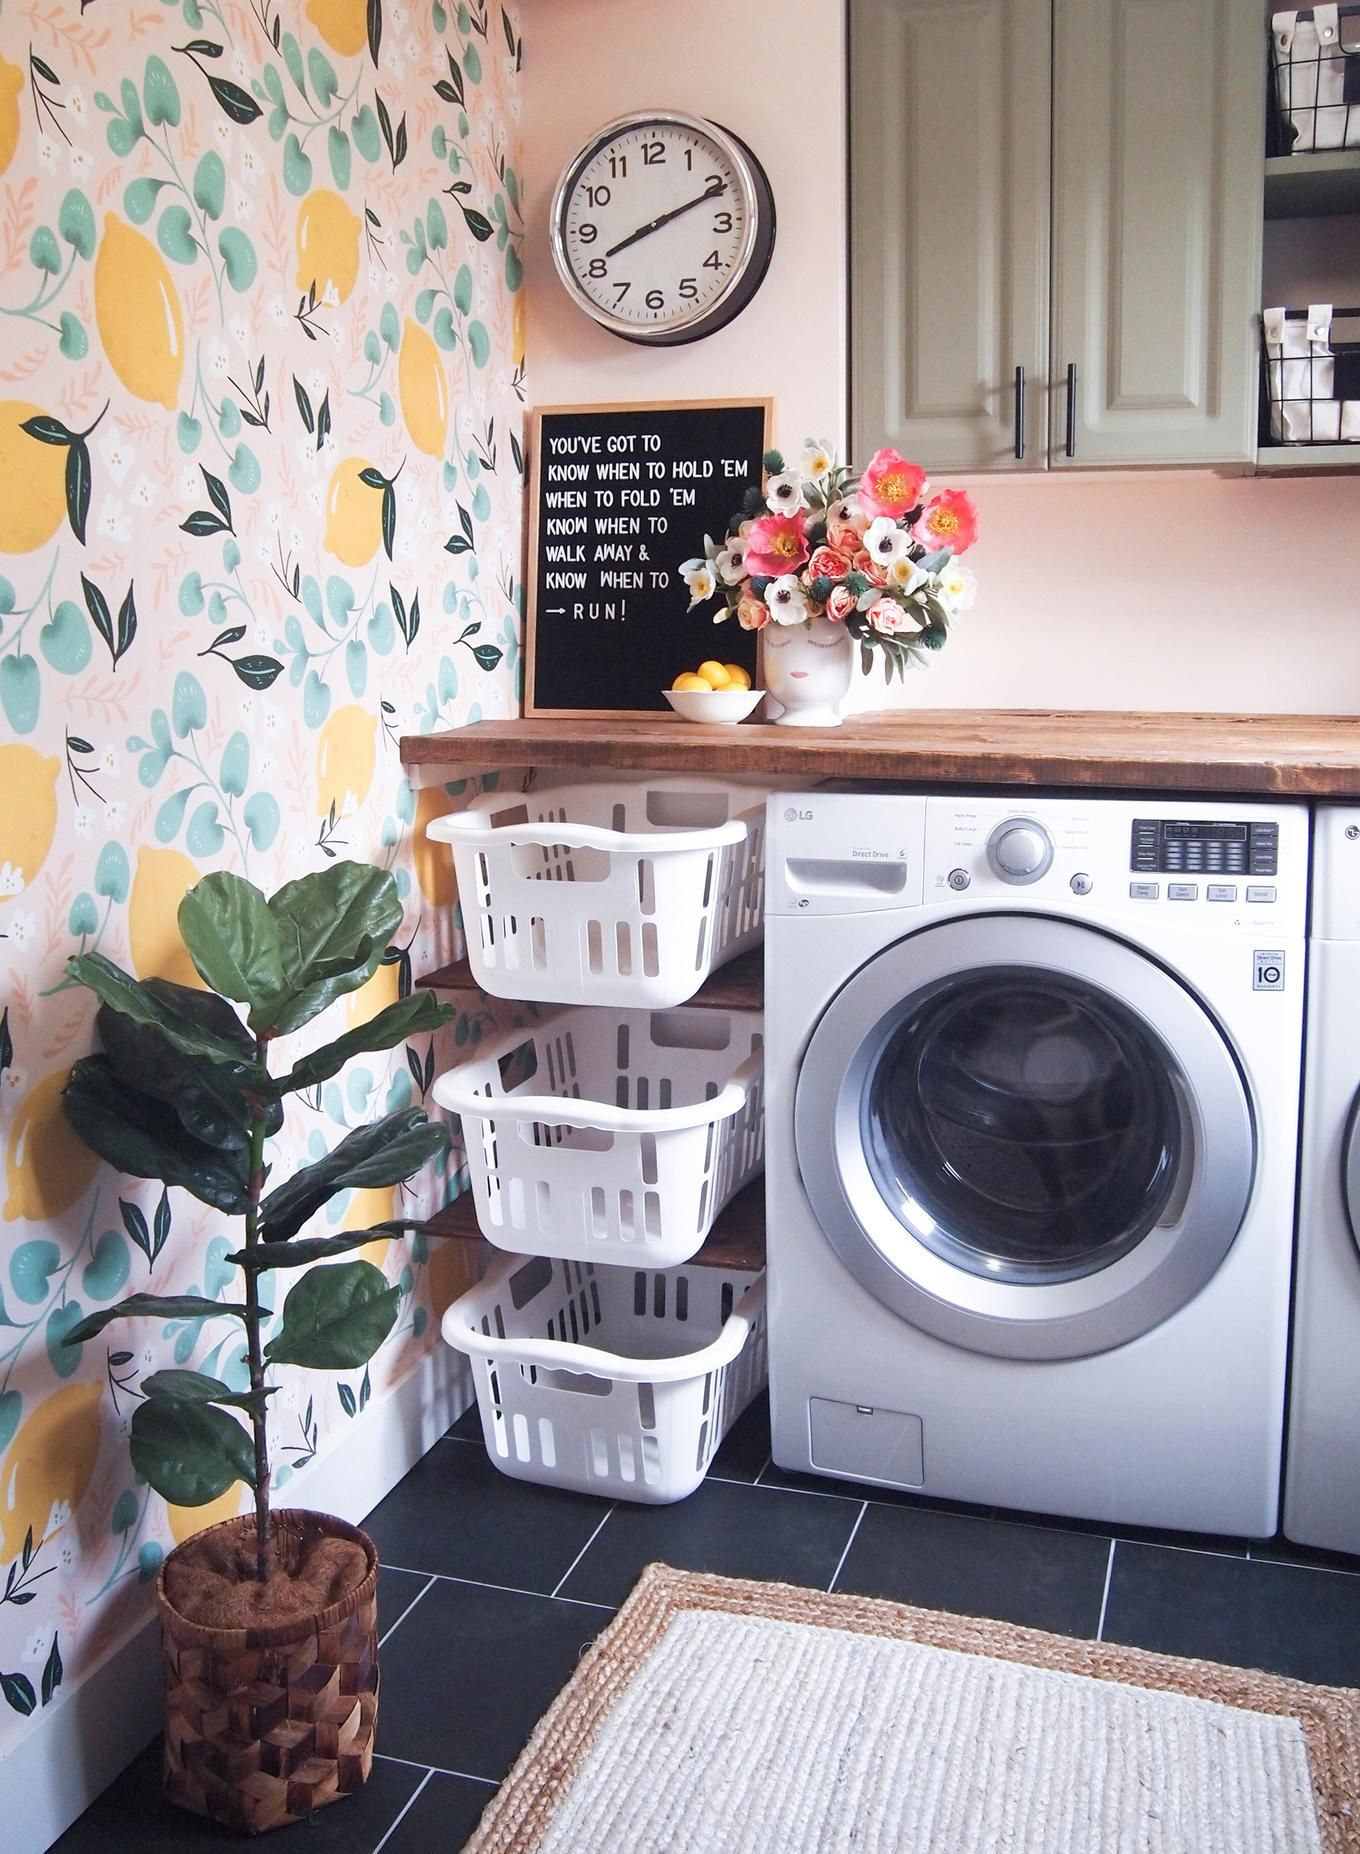 Design Your Own Laundry Room: Home Organization Ideas To Turn Unused Space Into Storage